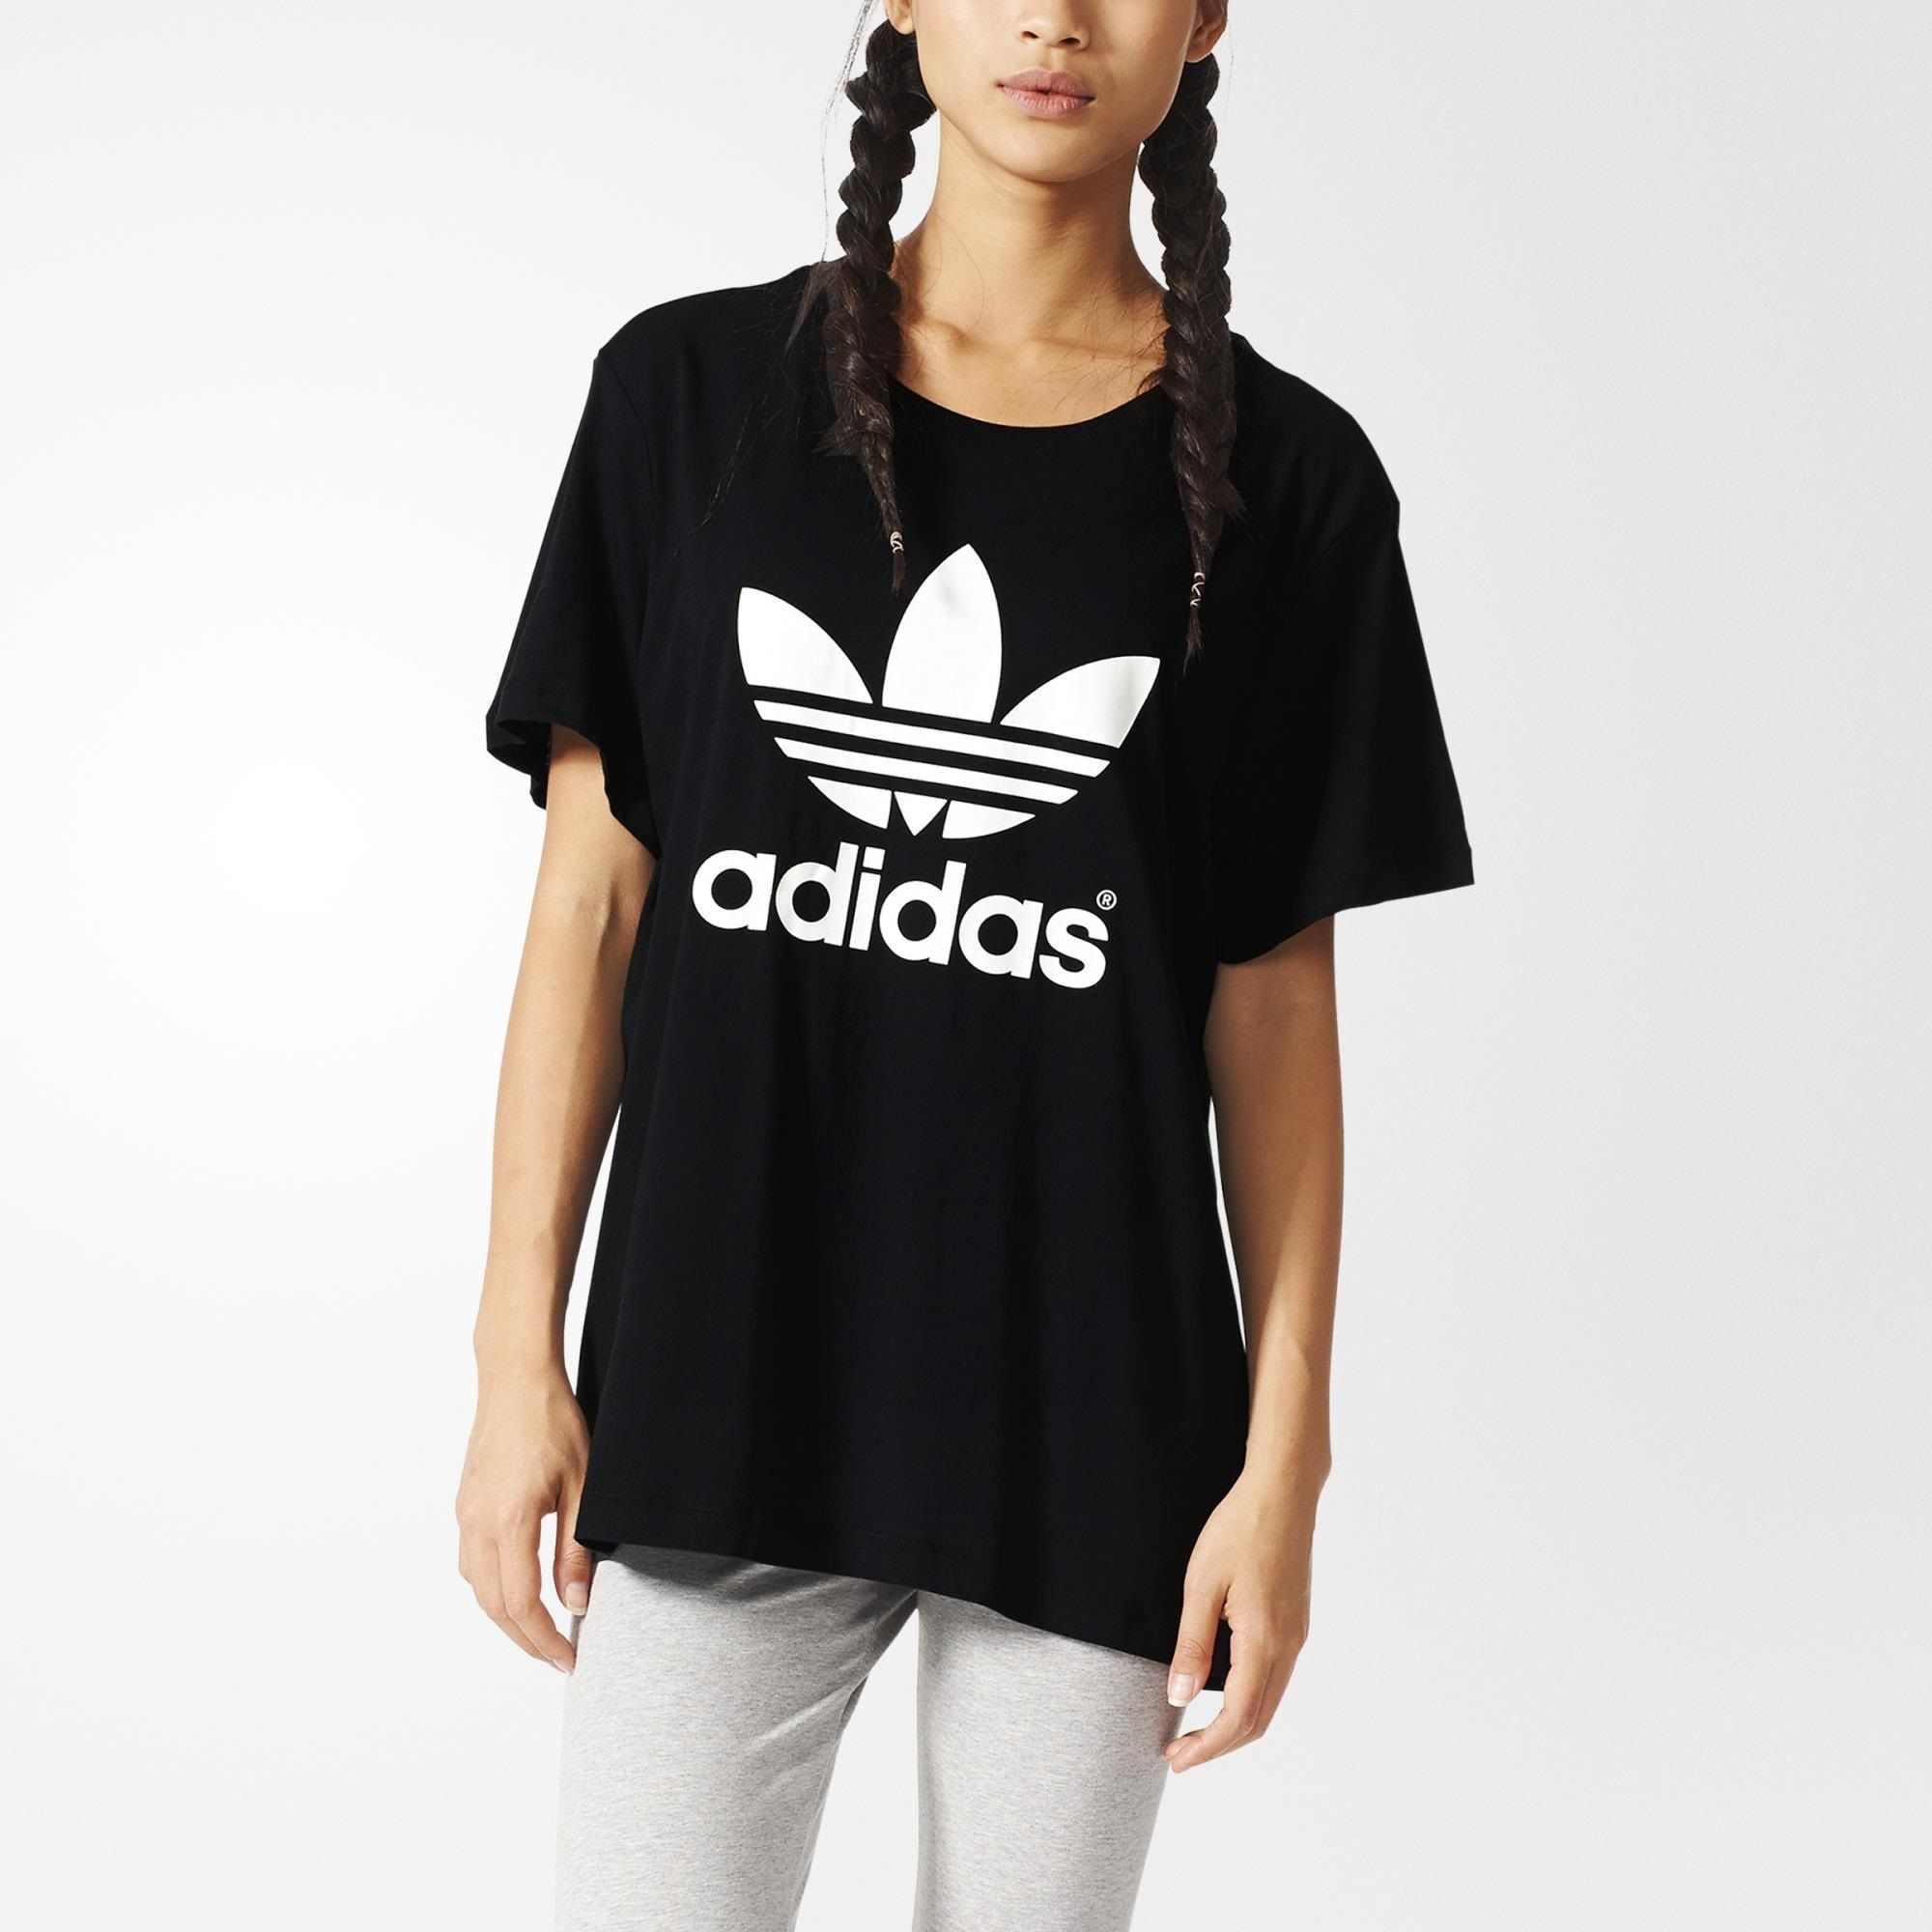 adidas style in a relaxed boyfriend fit. This women's t-shirt features a  rubber